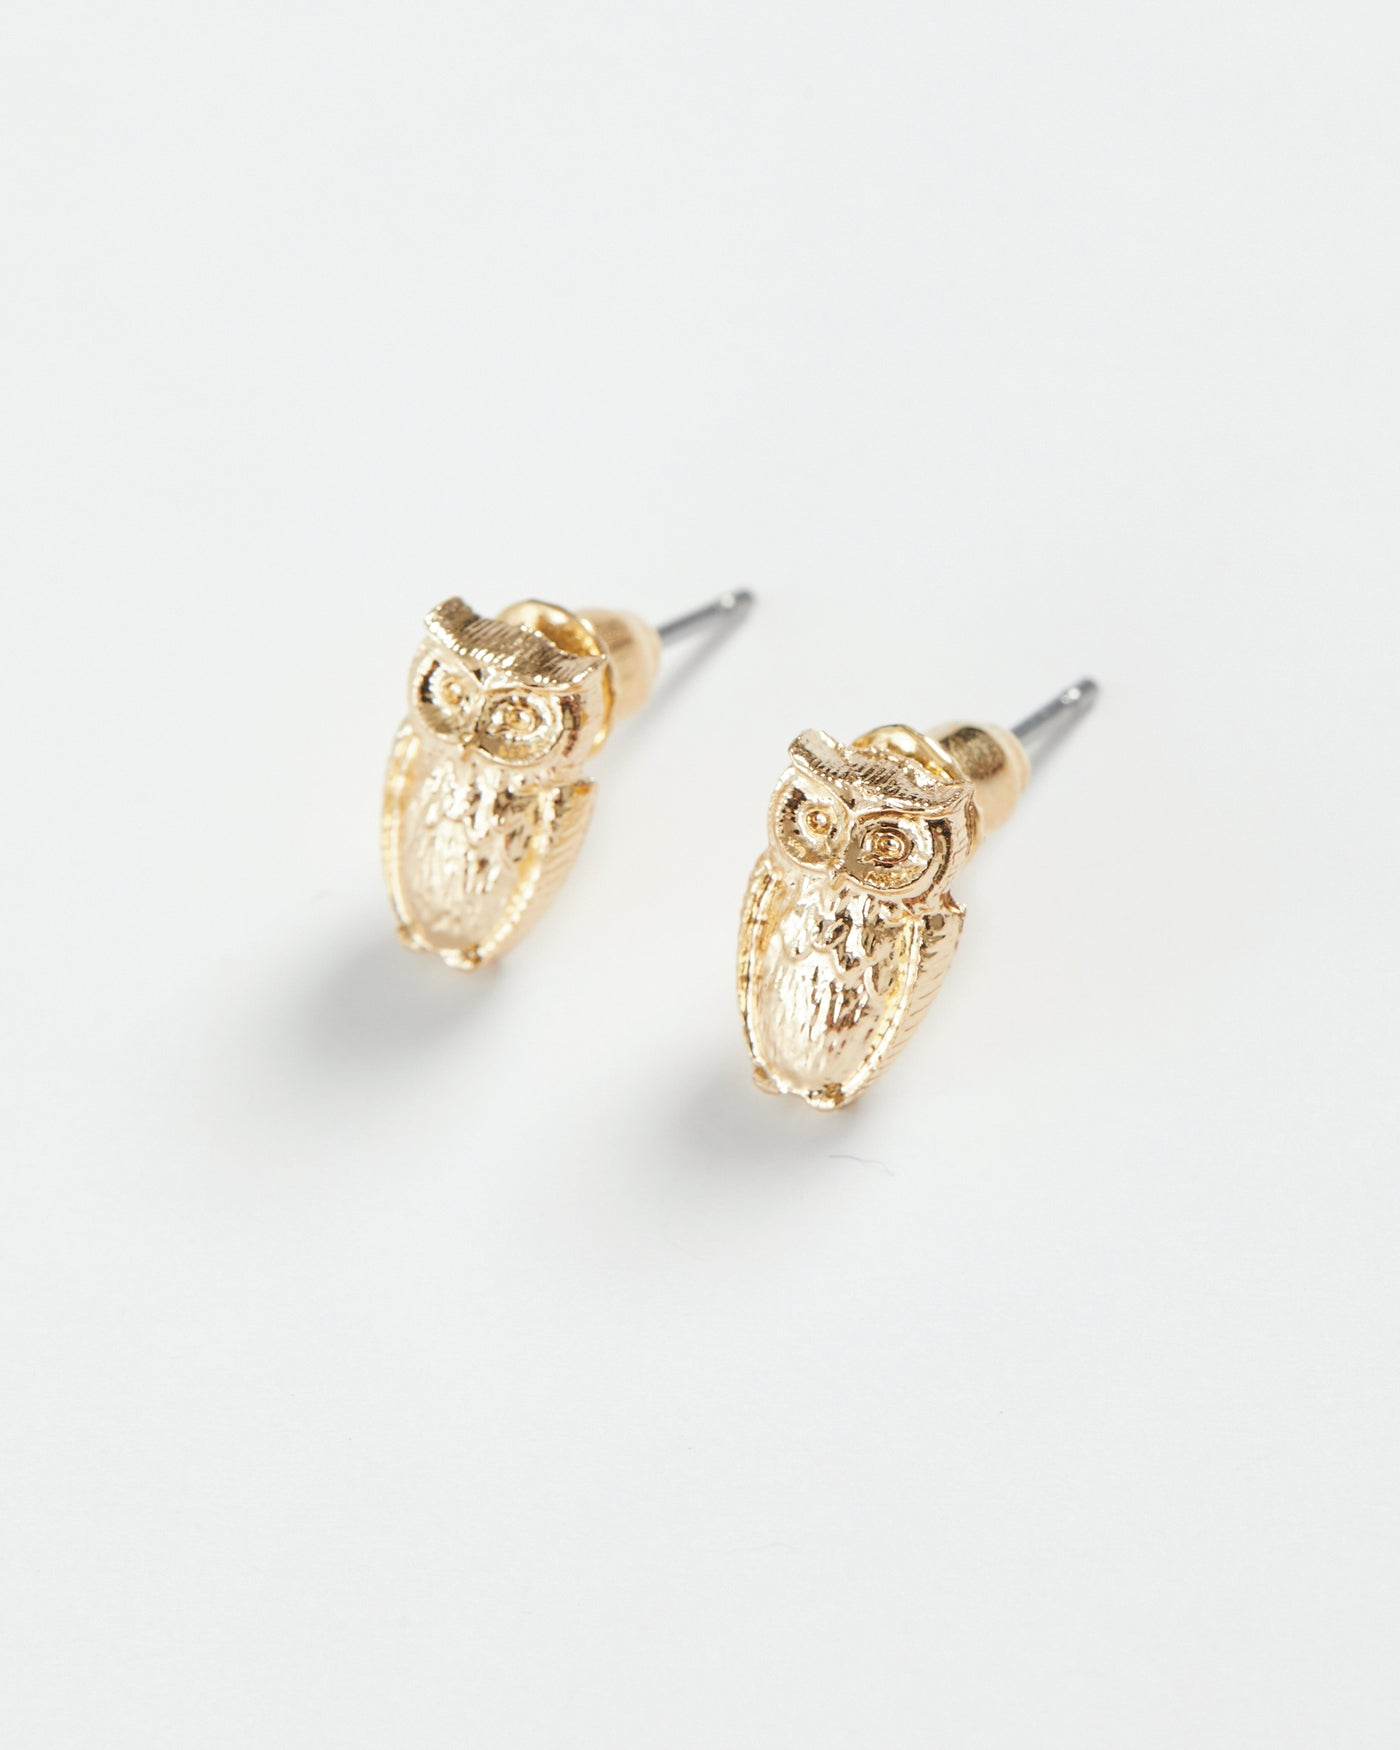 Gold Owl Stud Earrings